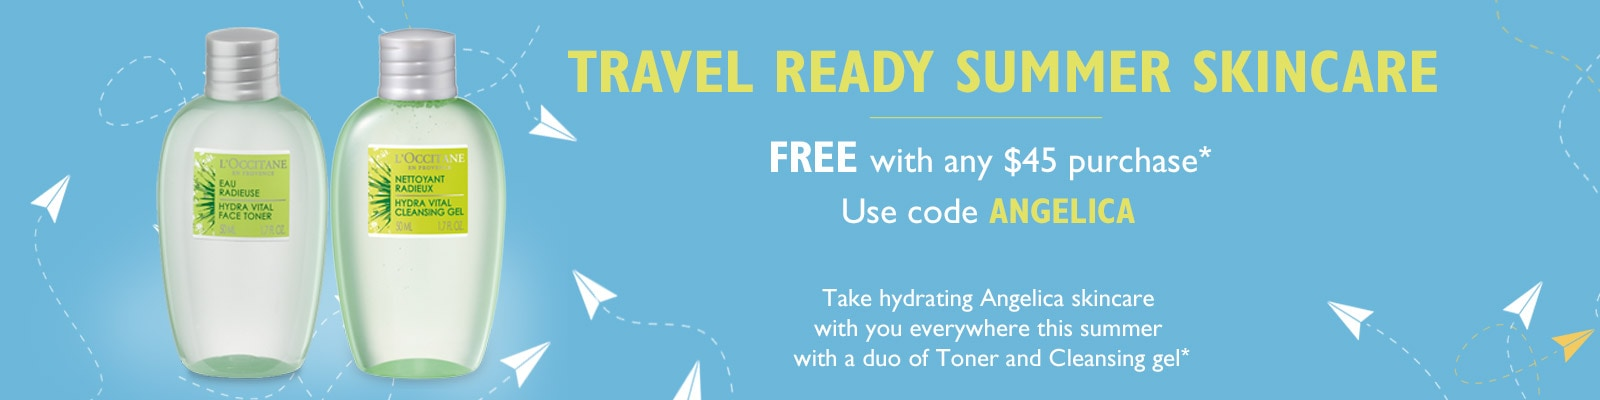 Travel Ready Summer Skincare Free with any $45 purchase.  Use code ANGELICA.